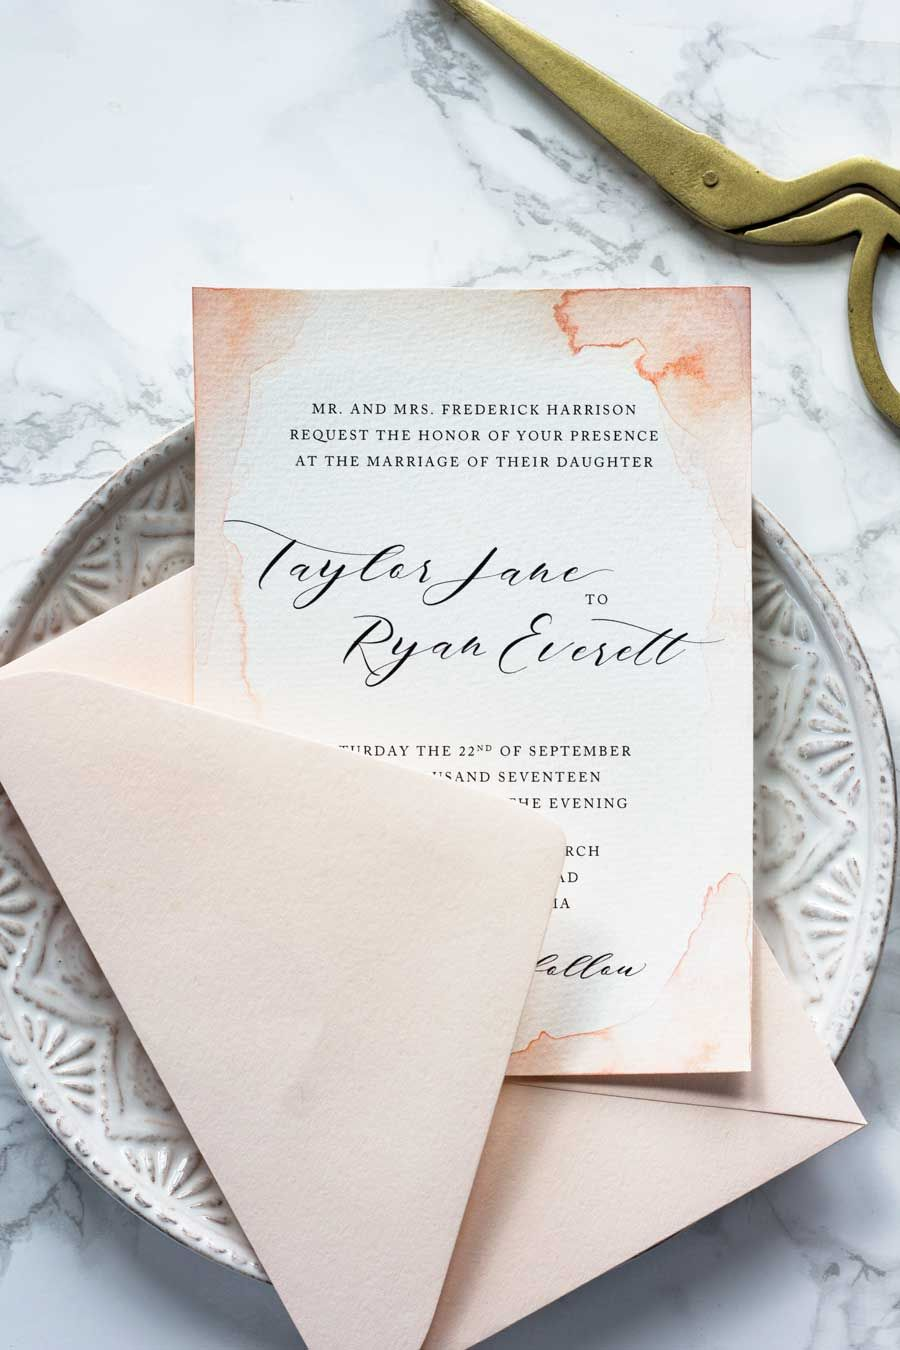 These Watercolor Wedding Invitations Are One Of Our Favorite Proje Watercolor Wedding Invitations Diy Watercolor Wedding Invitations Making Wedding Invitations